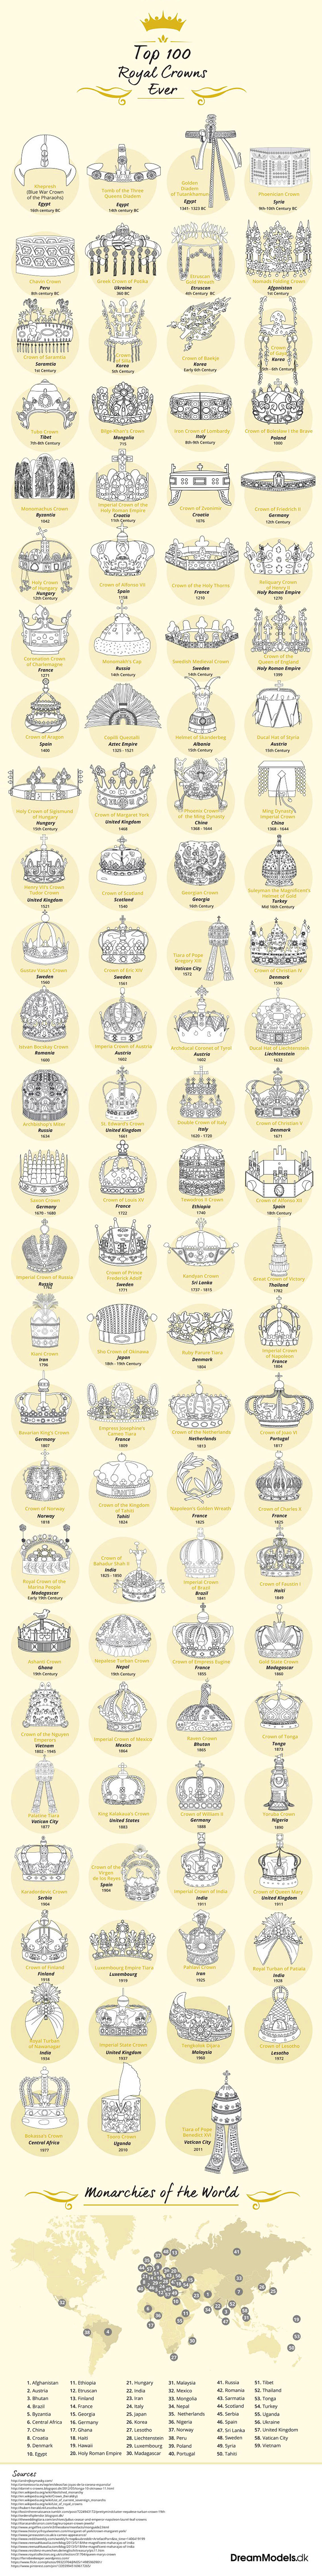 100 Royal Crowns of the World - History Infographic